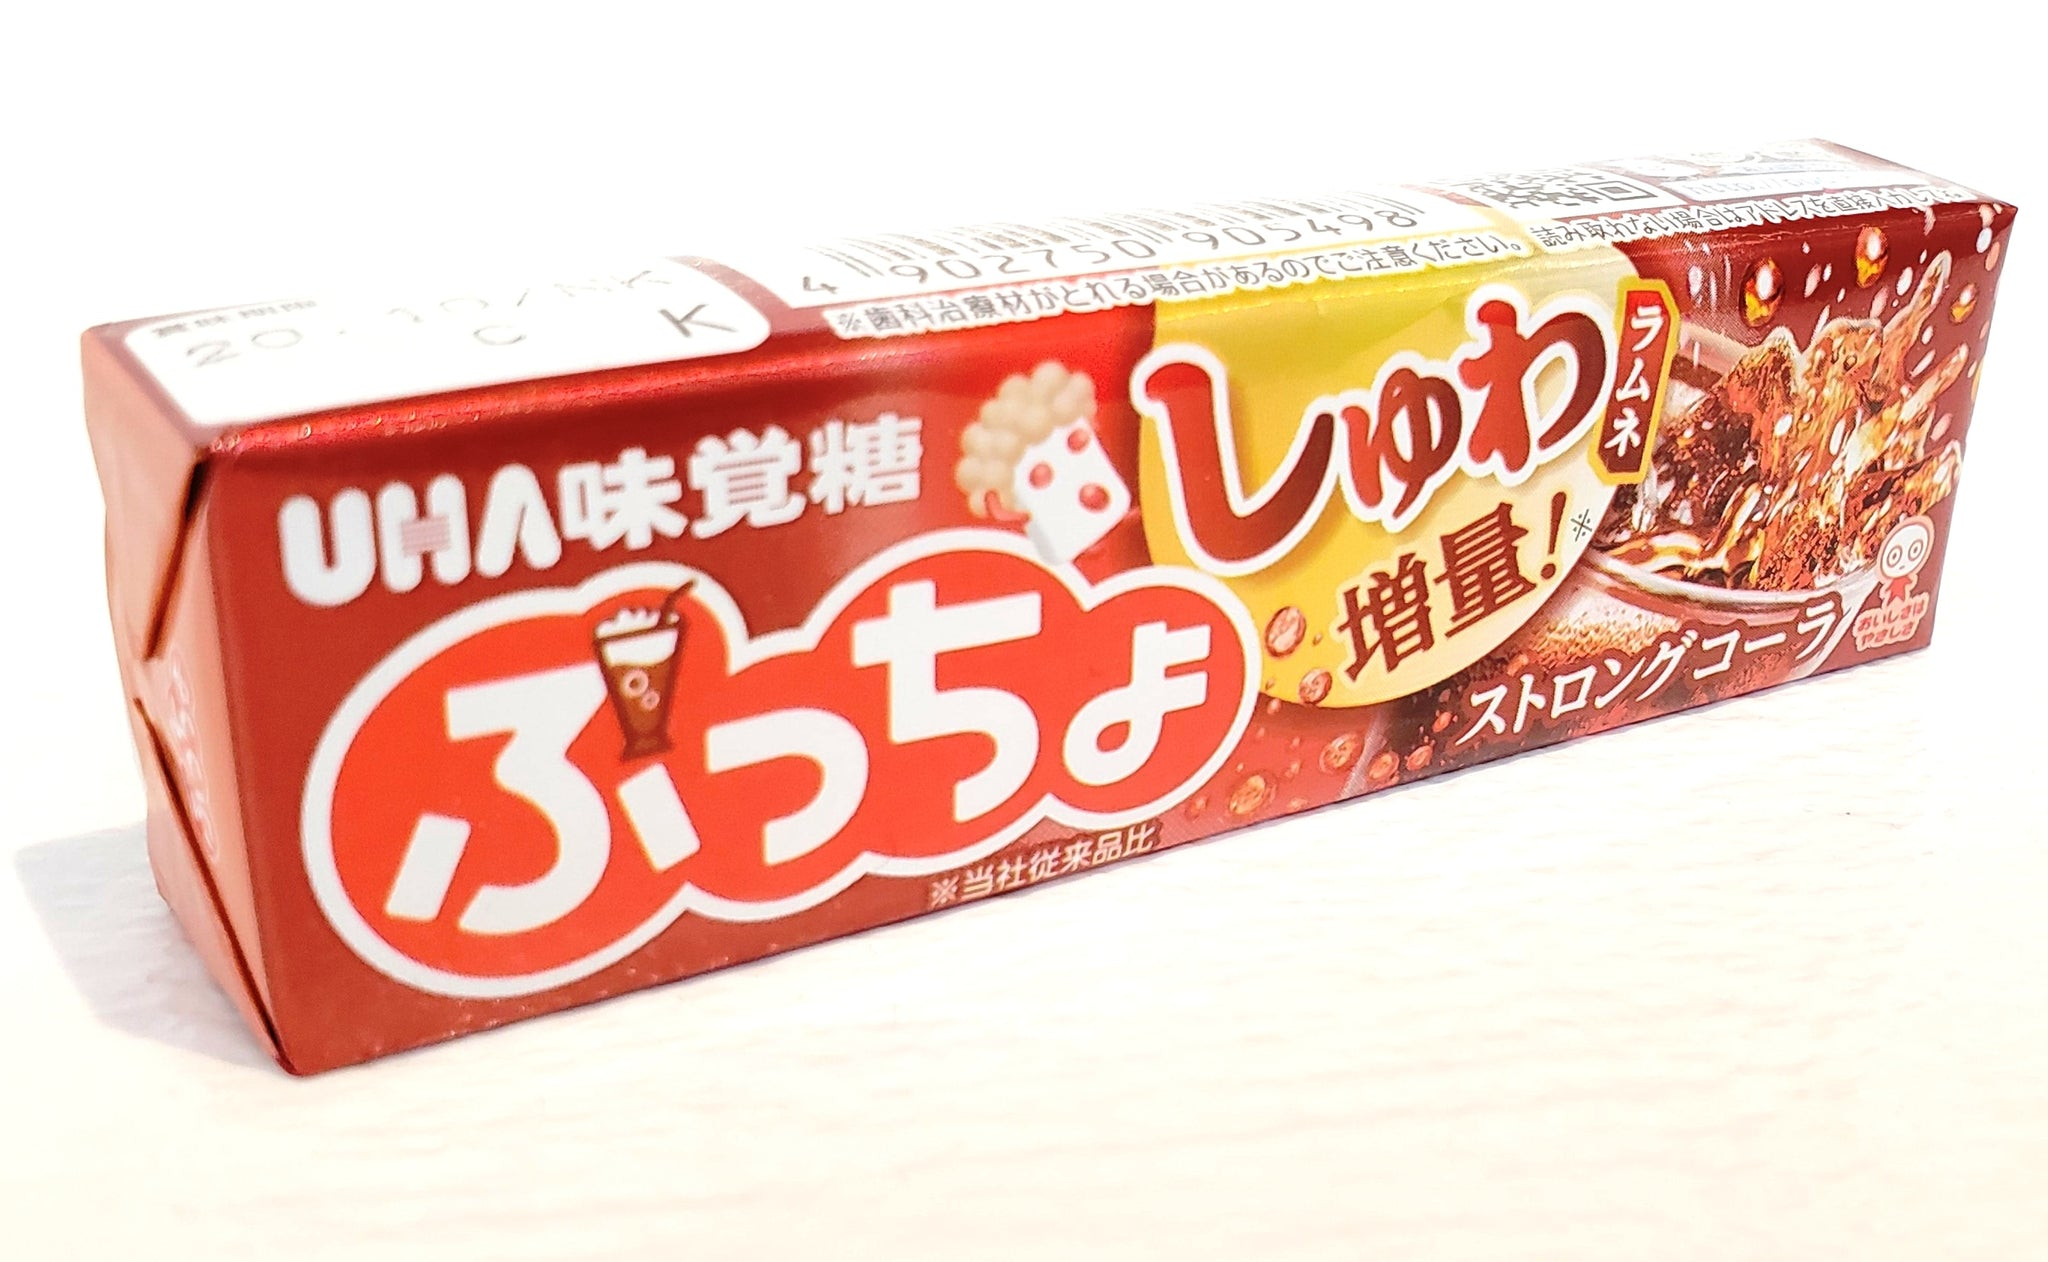 UHA puccho cola chewy candy